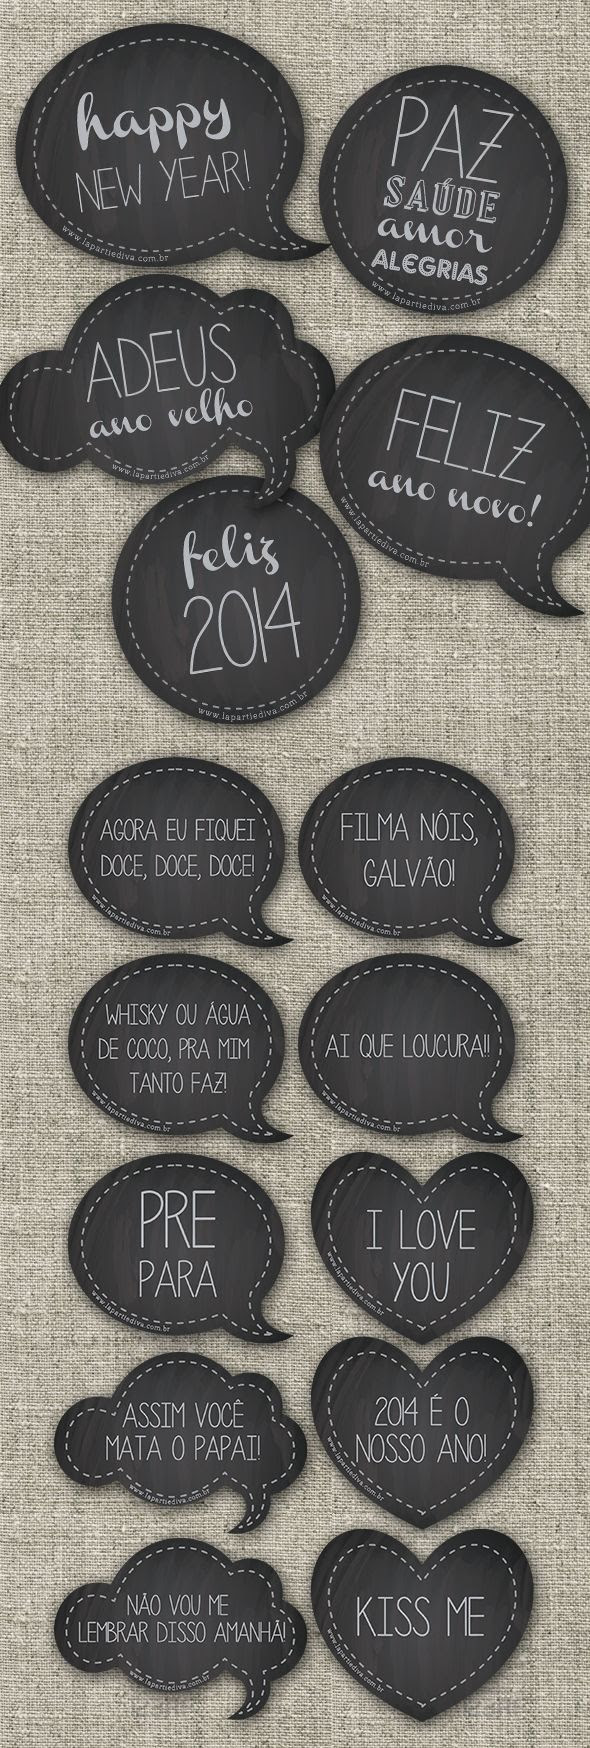 plaquinhas divertidas para ano novo, photobooth, happy new year, chalckboar, free download, 2014, new year - www.lapartiediva.com.br